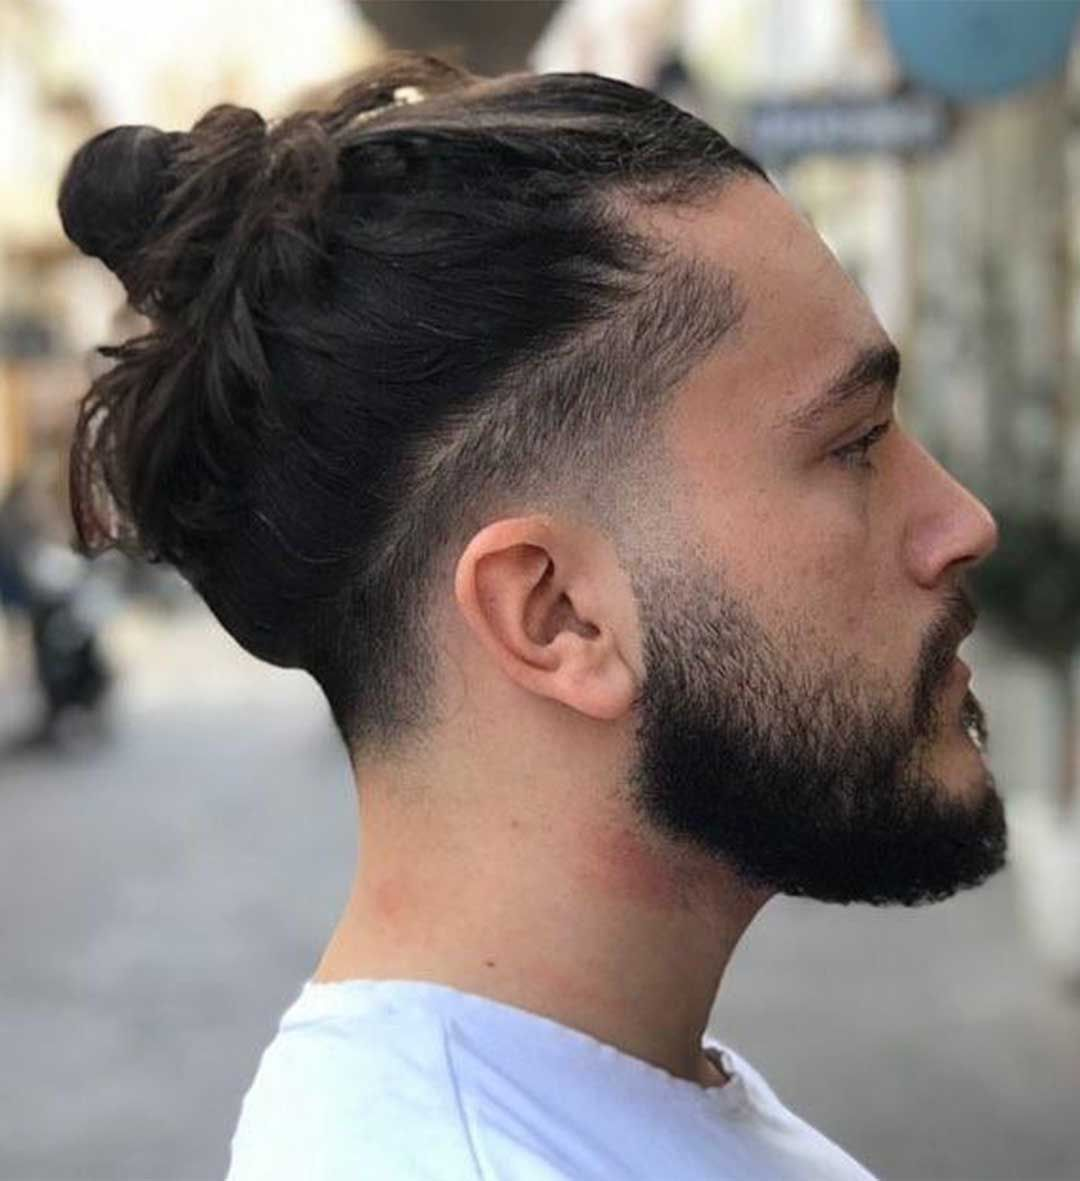 15 Best Man Bun Undercut Hairstyles Men S Hairstyle Tips In 2020 Man Bun Undercut Man Bun Hairstyles Long Hair Styles Men